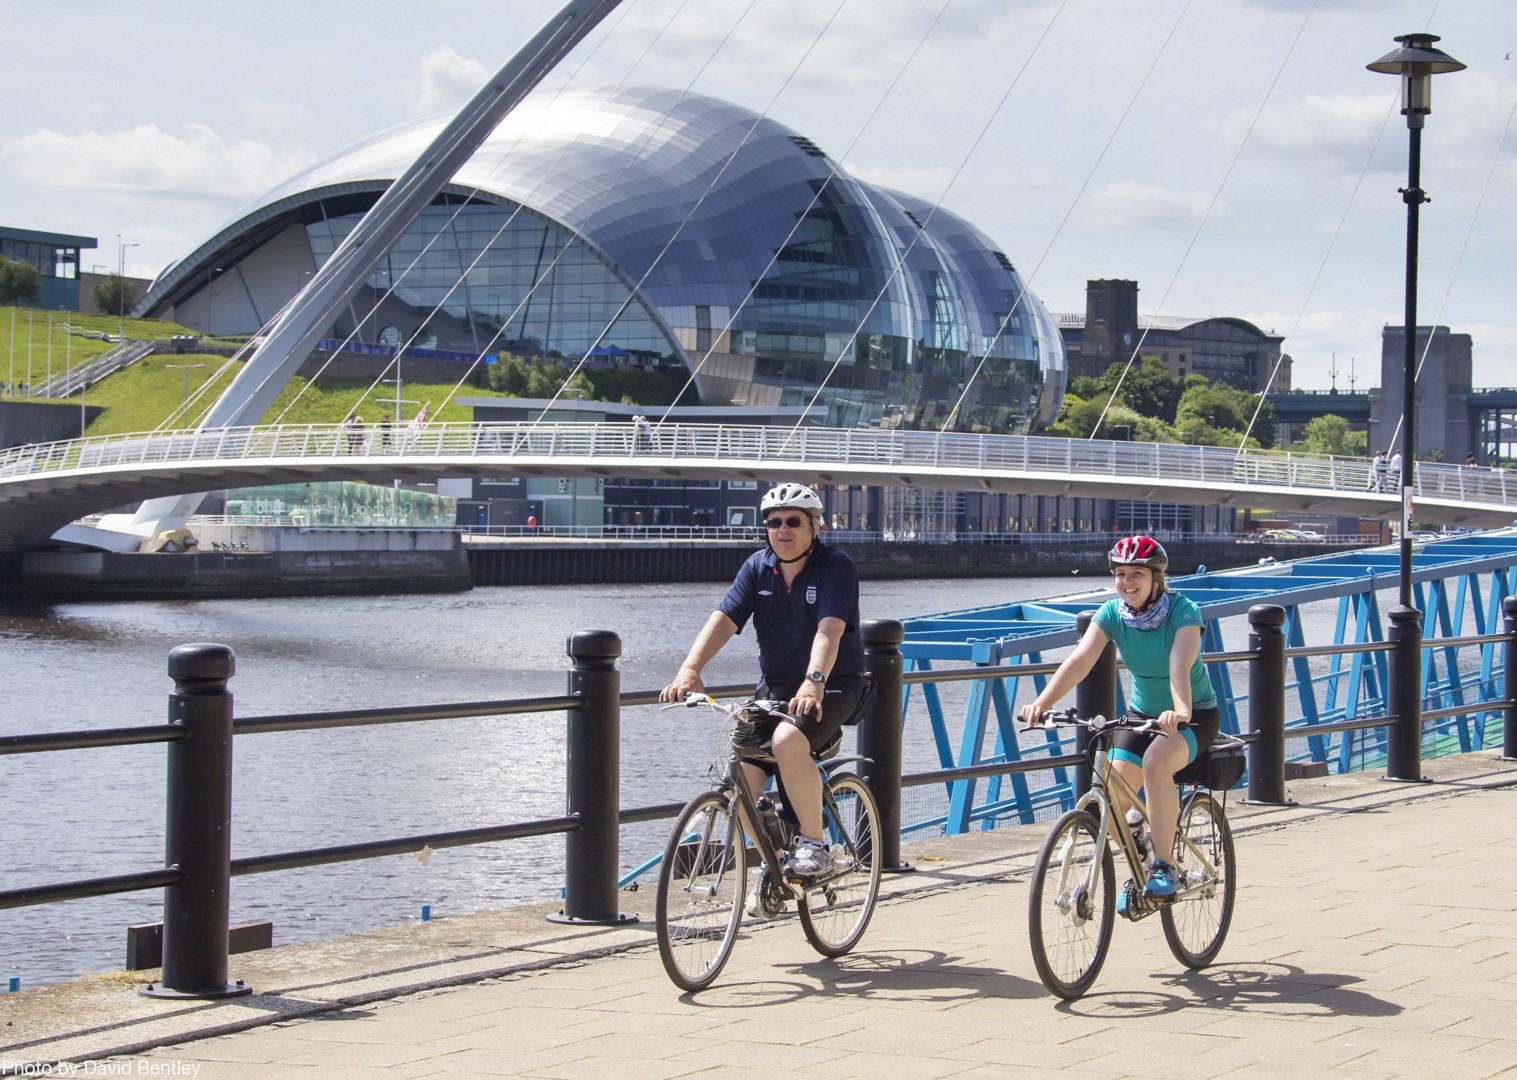 newcastle-family-self-guided-blinking-bridge.jpg - UK - Hadrian's Cycleway - 6 Days Cycling - Self-Guided Family Cycling Holiday - Family Cycling